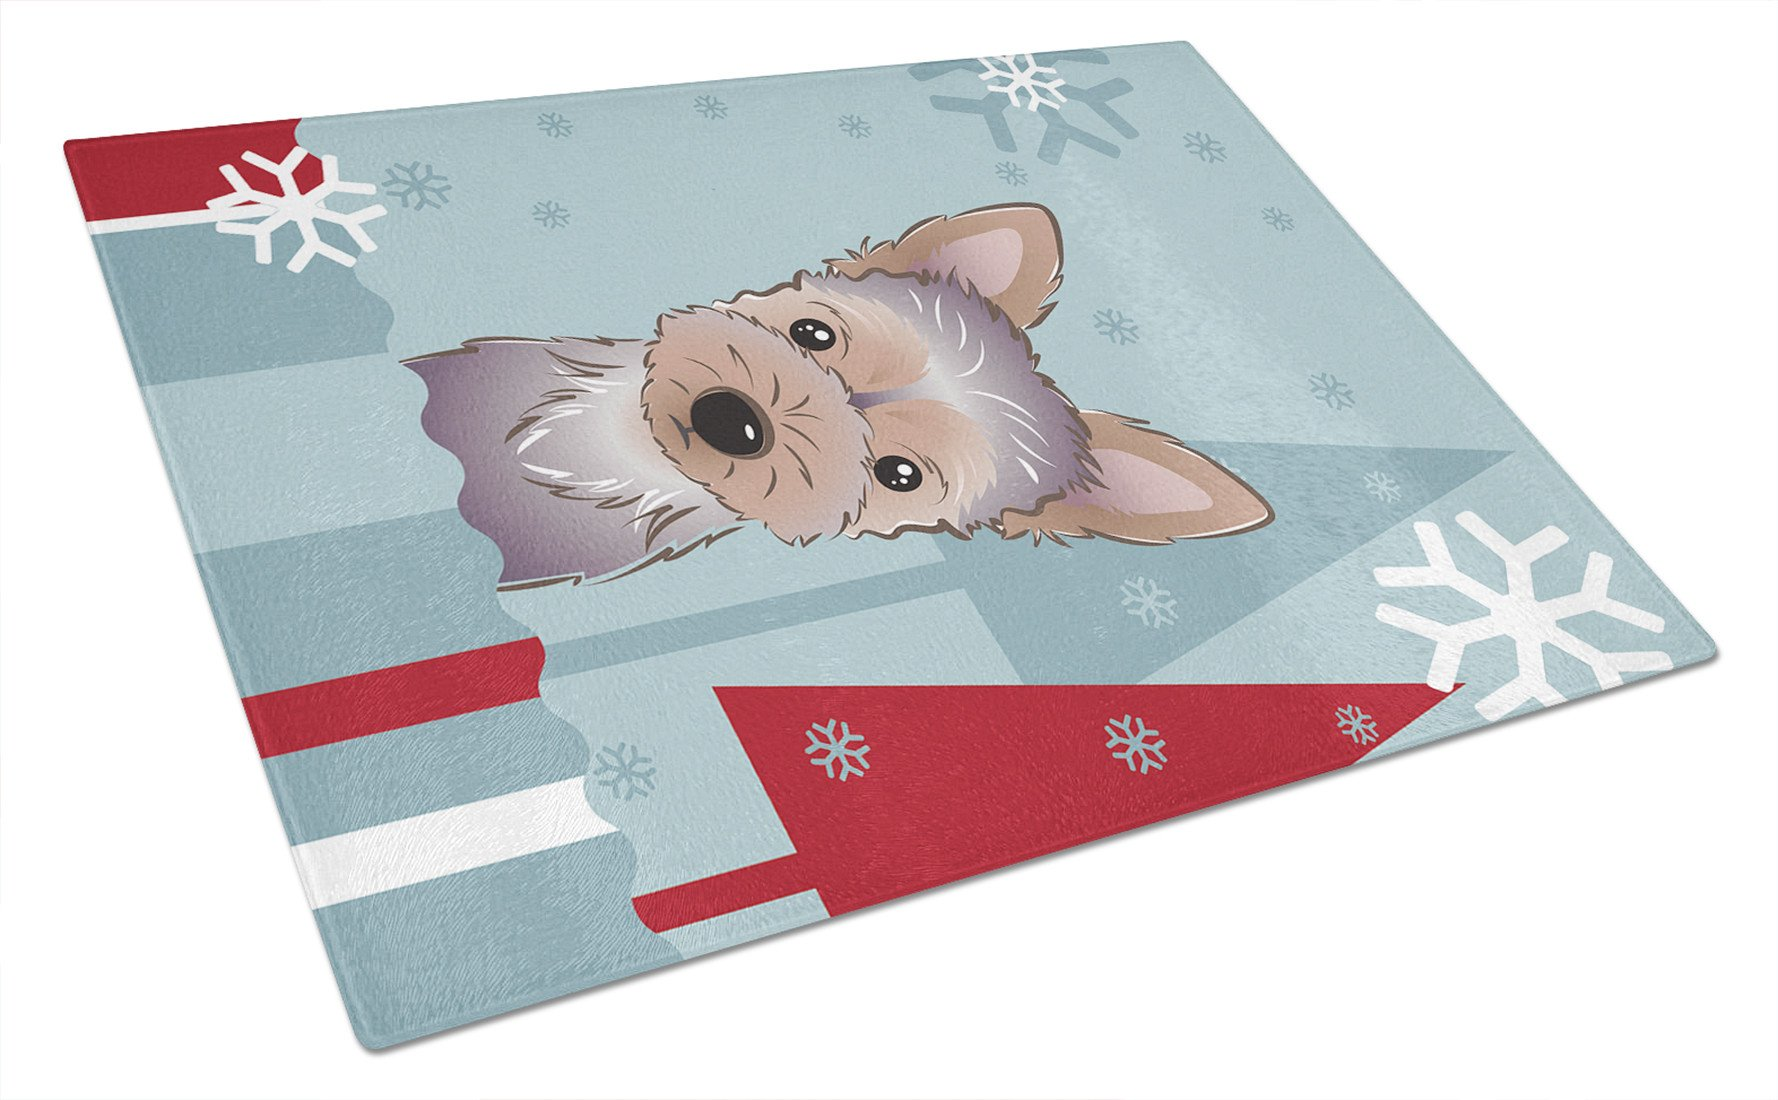 Winter Holiday Yorkie Puppy Glass Cutting Board Large BB1728LCB by Caroline's Treasures